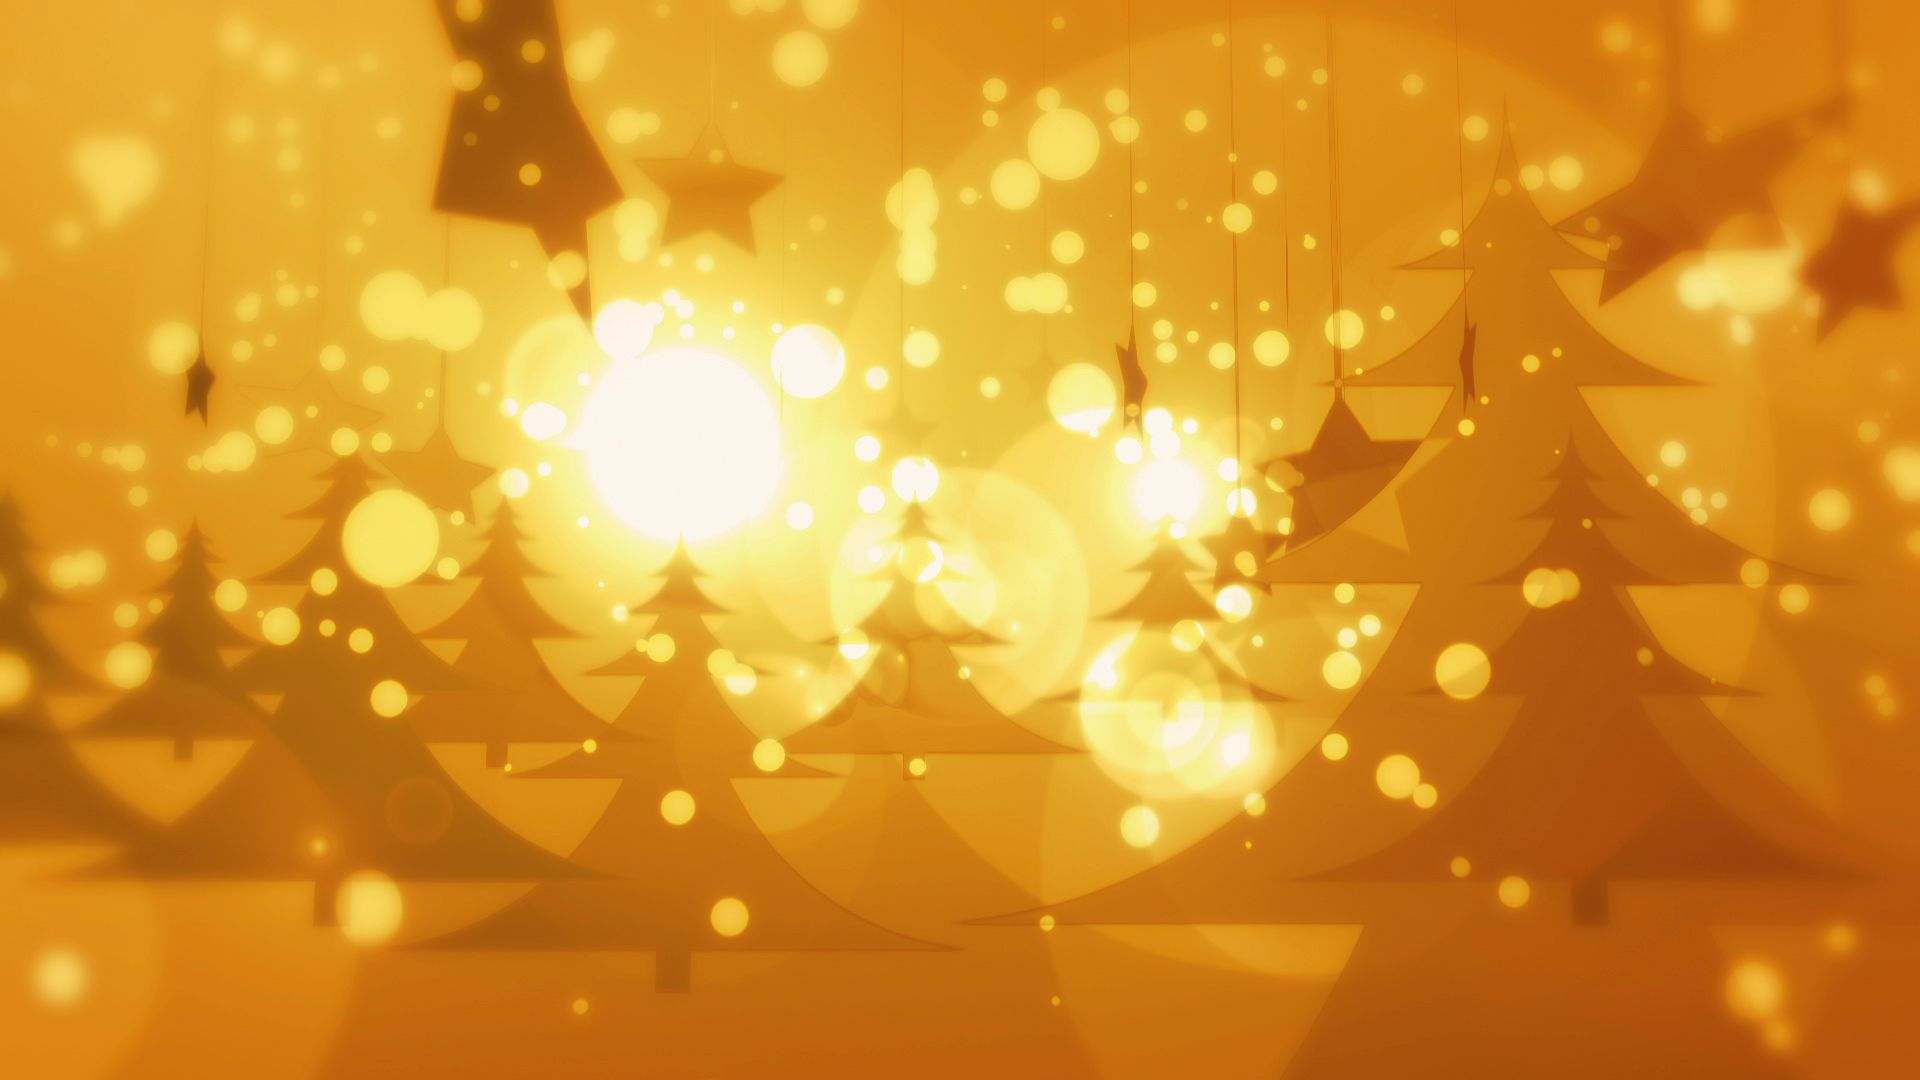 golden christmas downloops creative motion backgrounds